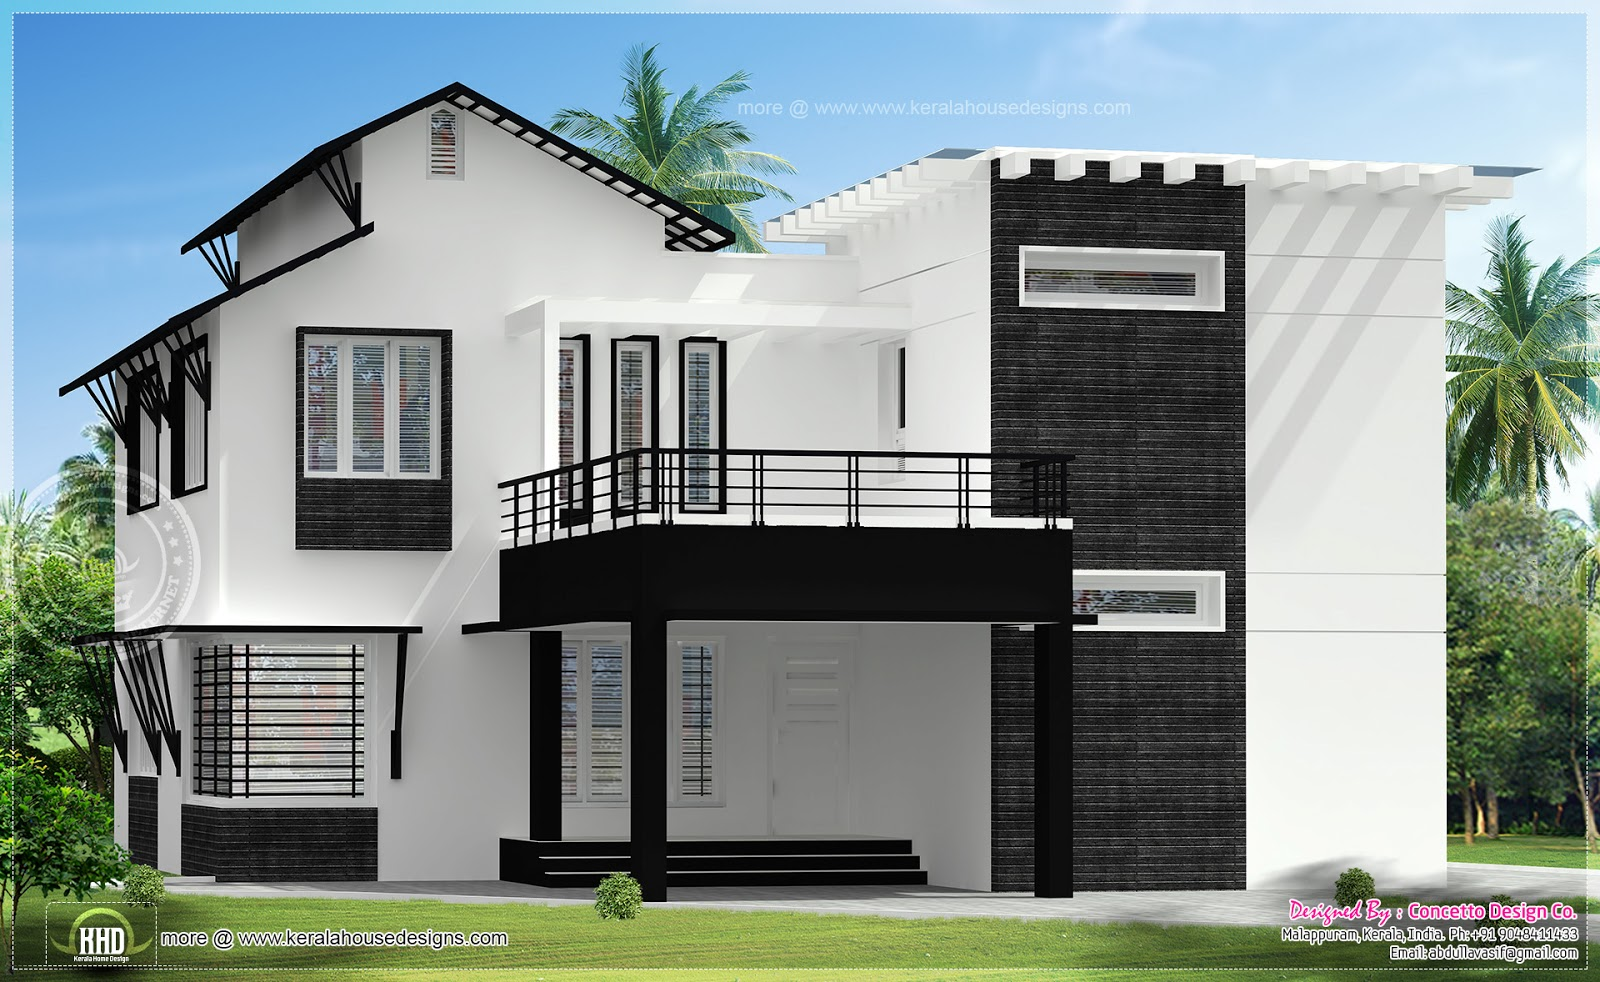 5 different house exteriors by concetto design kerala for Blueprint home plans